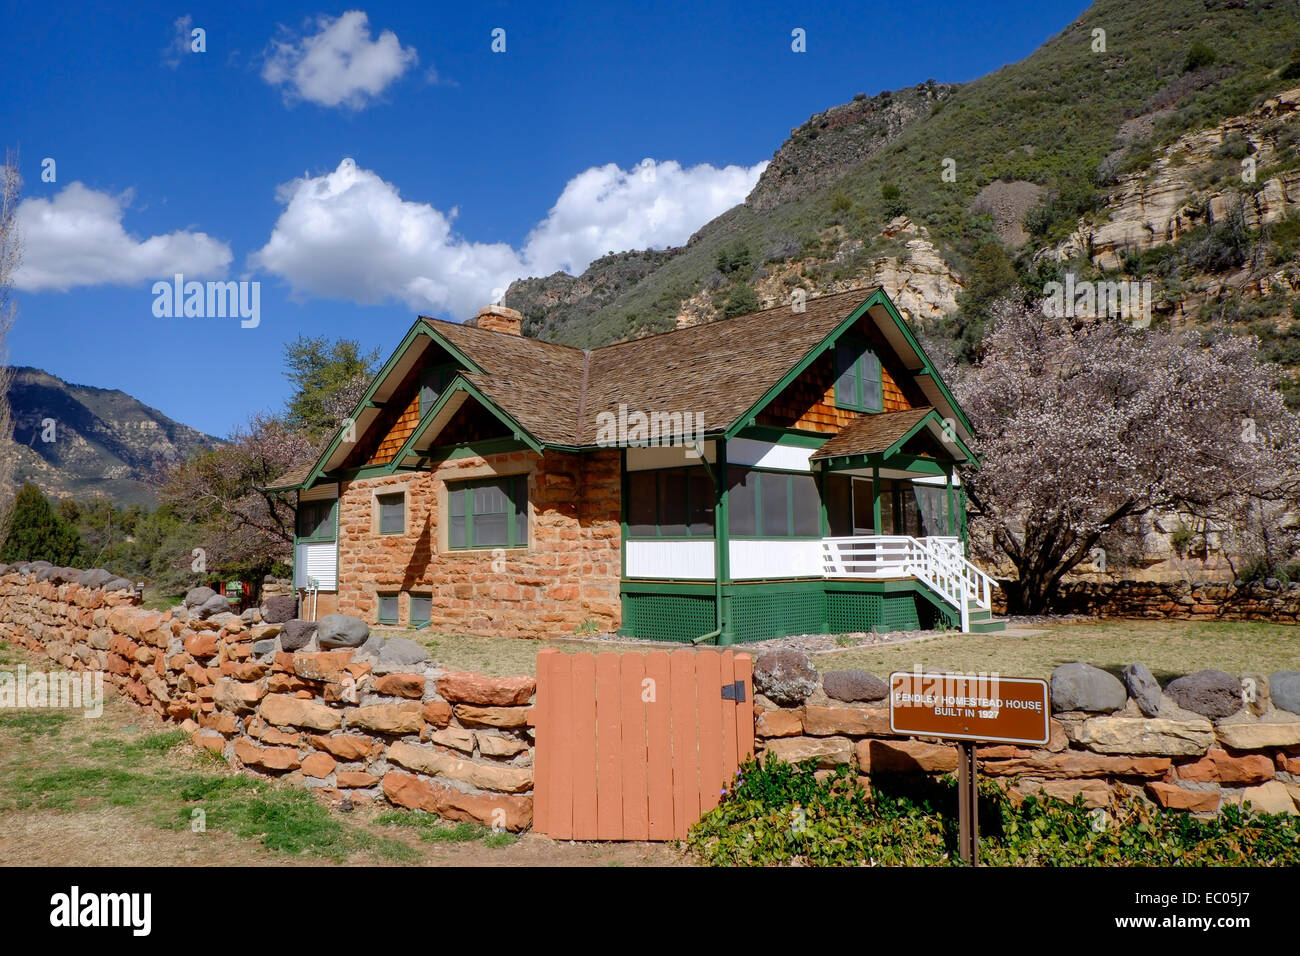 The original farmstead at the old Pendley orchard and farm, at Slide Rock State Park in Oak Creek Canyon, Arizona, - Stock Image